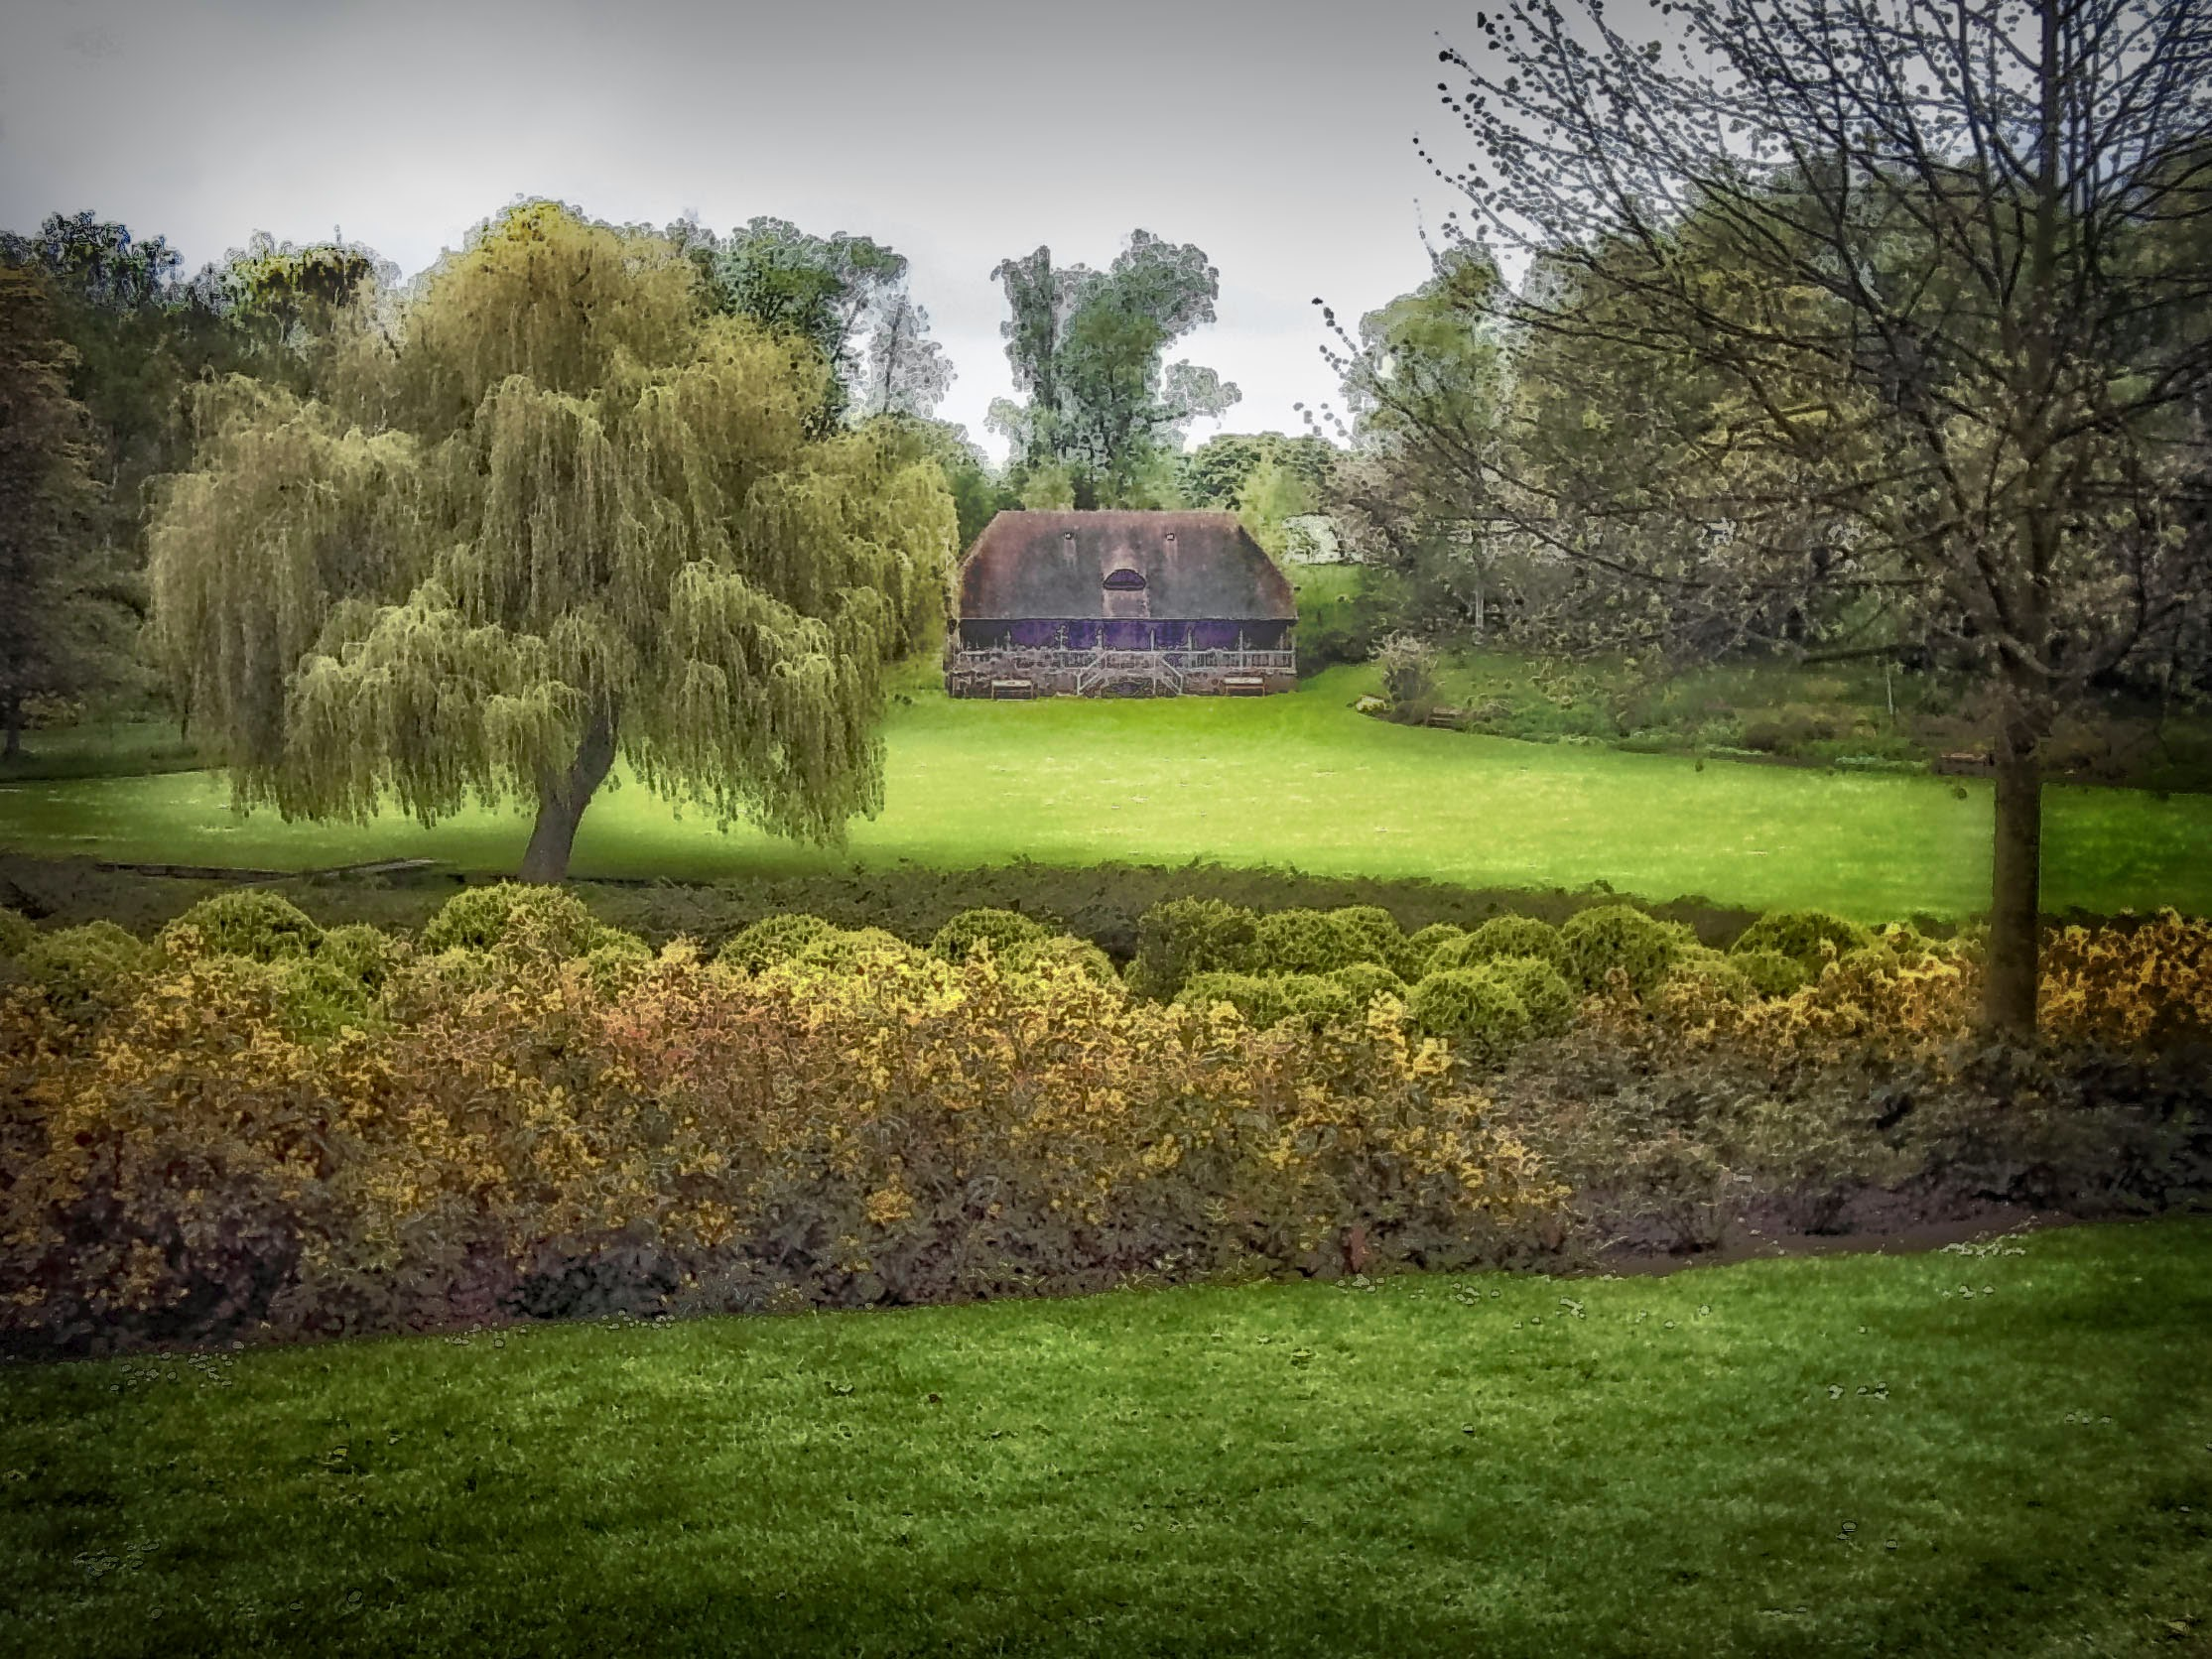 Photo: Thatch roof cottage on the grounds of Leeds Castle.